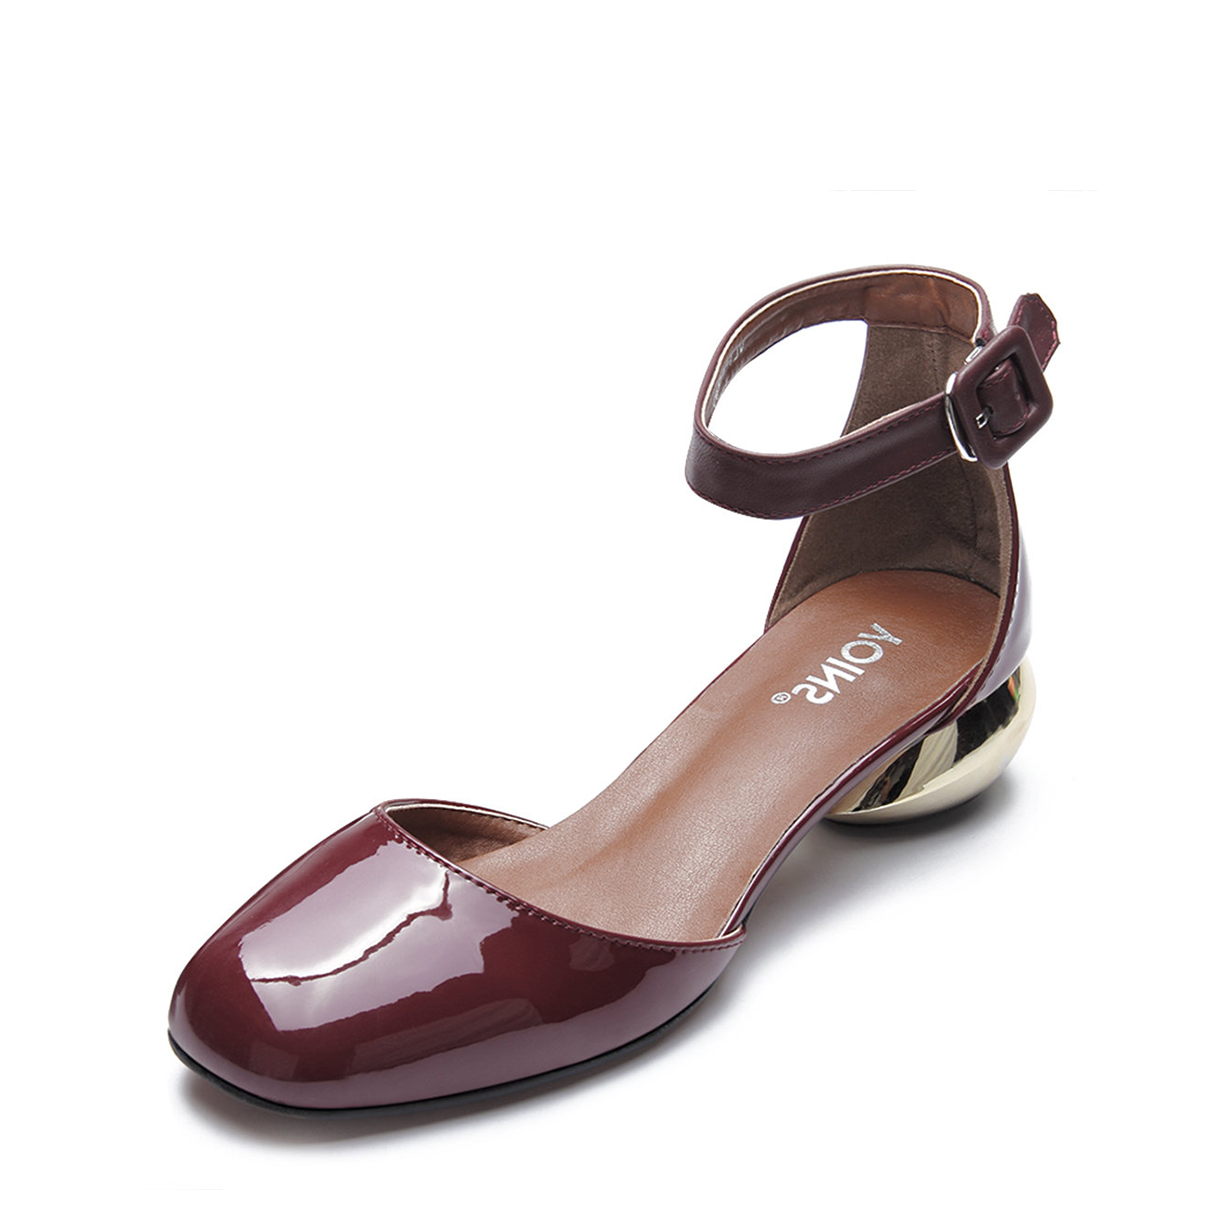 Burgundy Ankle Strap Patent Leather Heels